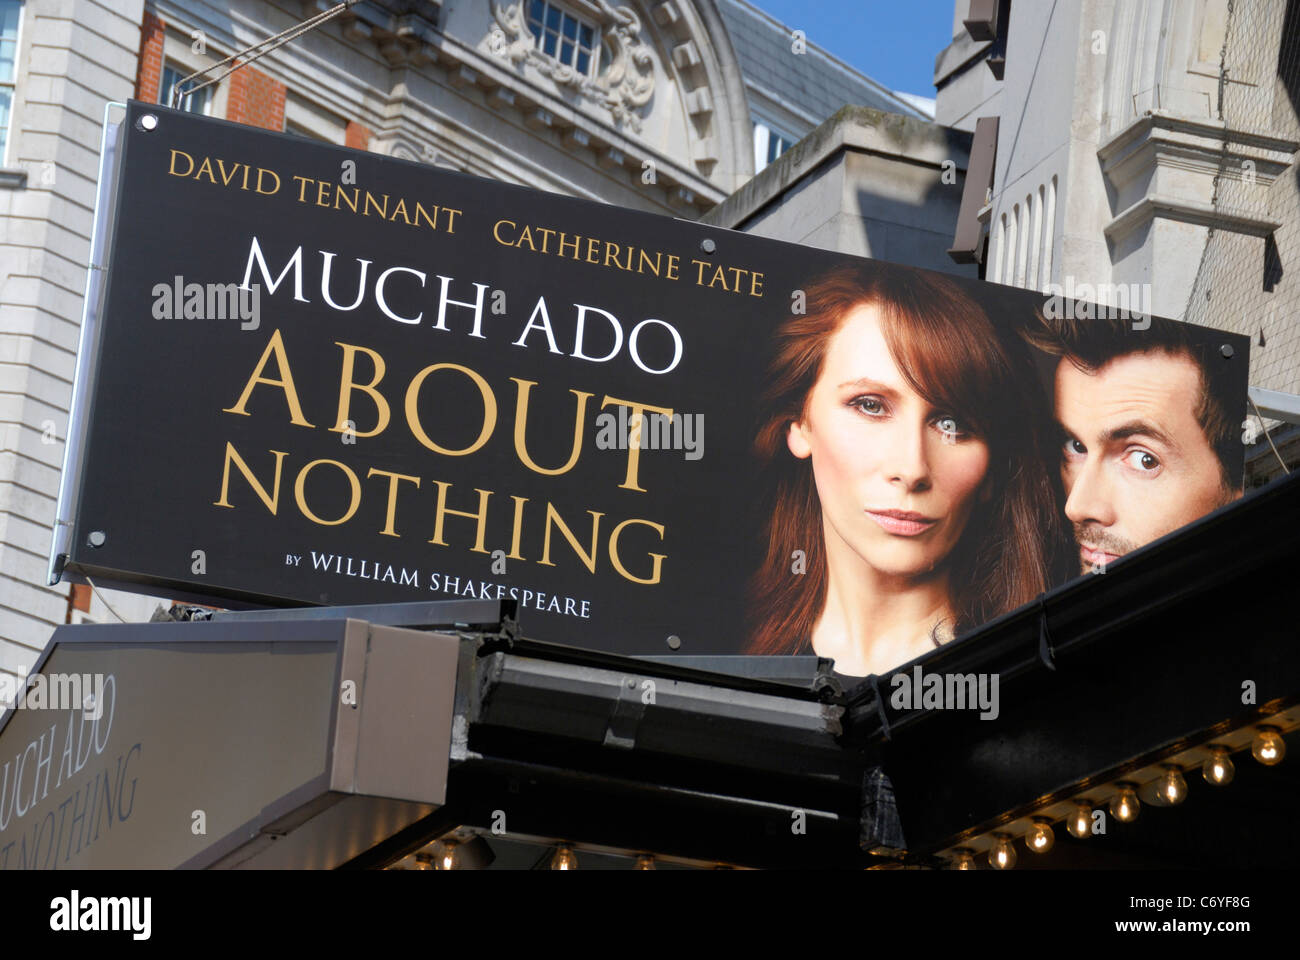 is much ado about nothing a comedy